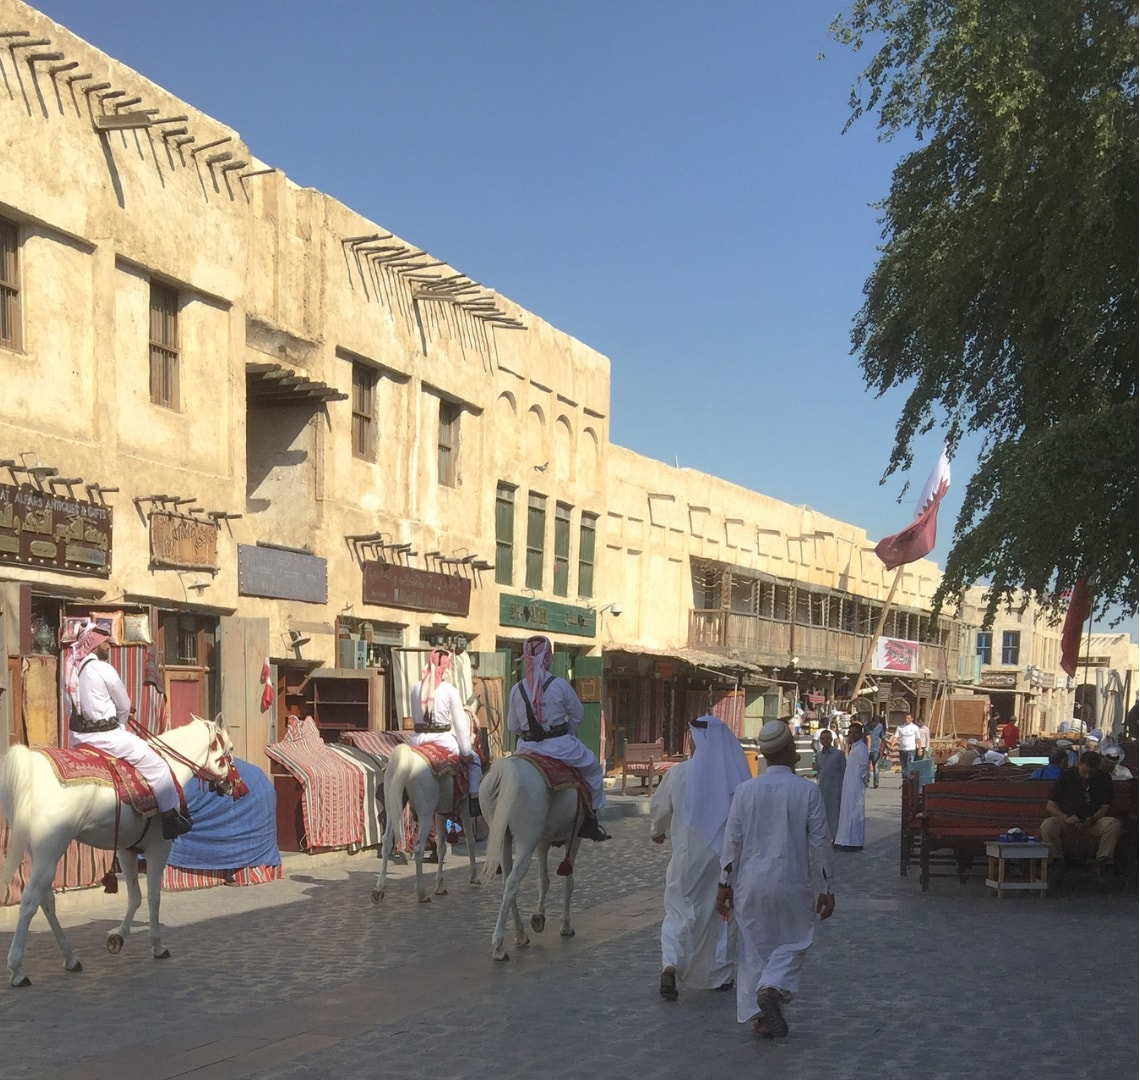 11 incredible things to do in Qatar - men on horseback riding through the outside part of the souq